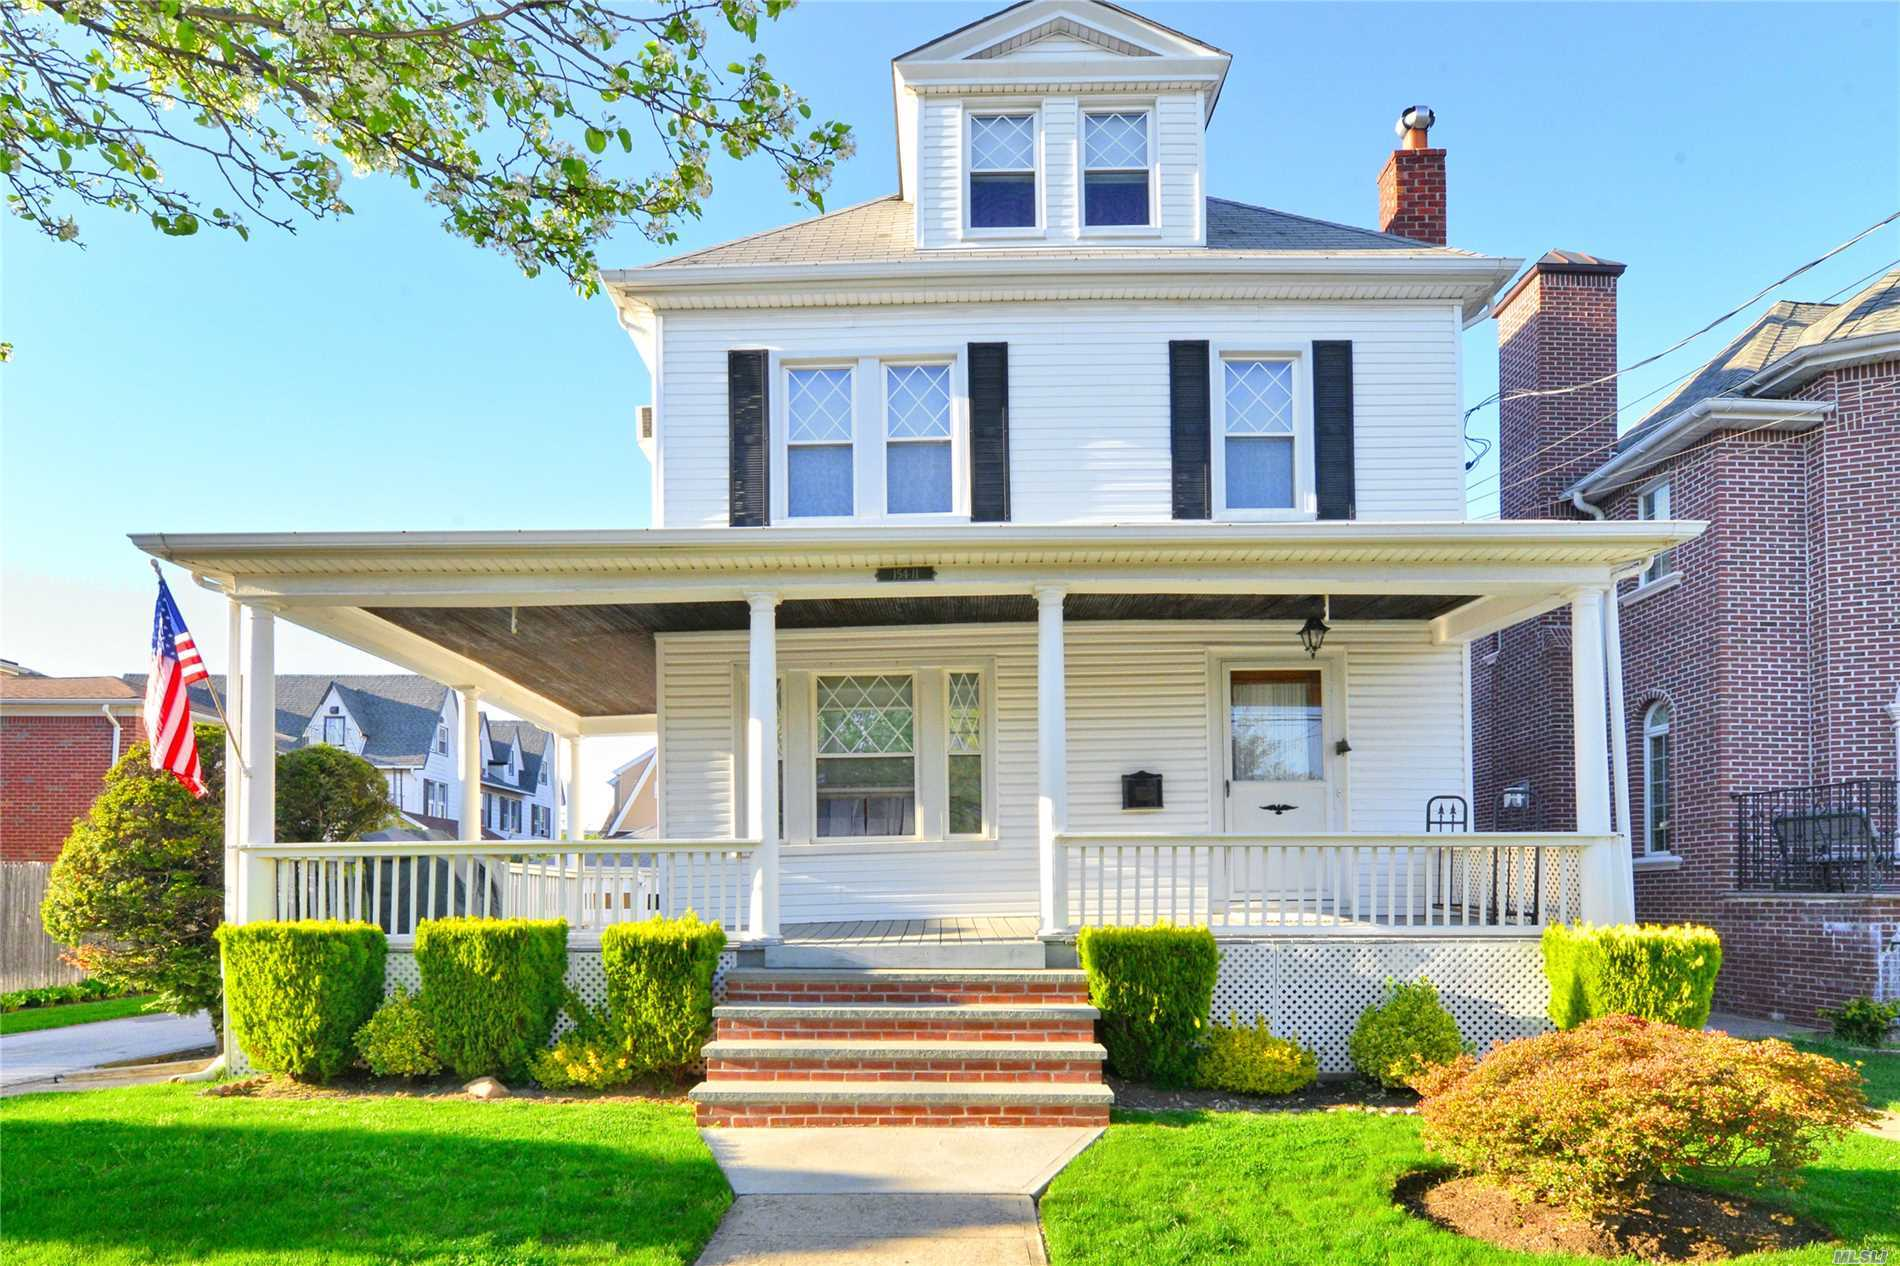 Detached Colonial in Beechhurst on oversized 6, 000 square foot lot. Great opportunity for rebuild in prestigious Beechhurst neighborhood. This well maintained colonial has 4 Bedrooms, 2 Full Baths, Office, Attic, and Above-Ground Pool. Schools: P.S.193; J.H.S.194; Bayside High School.